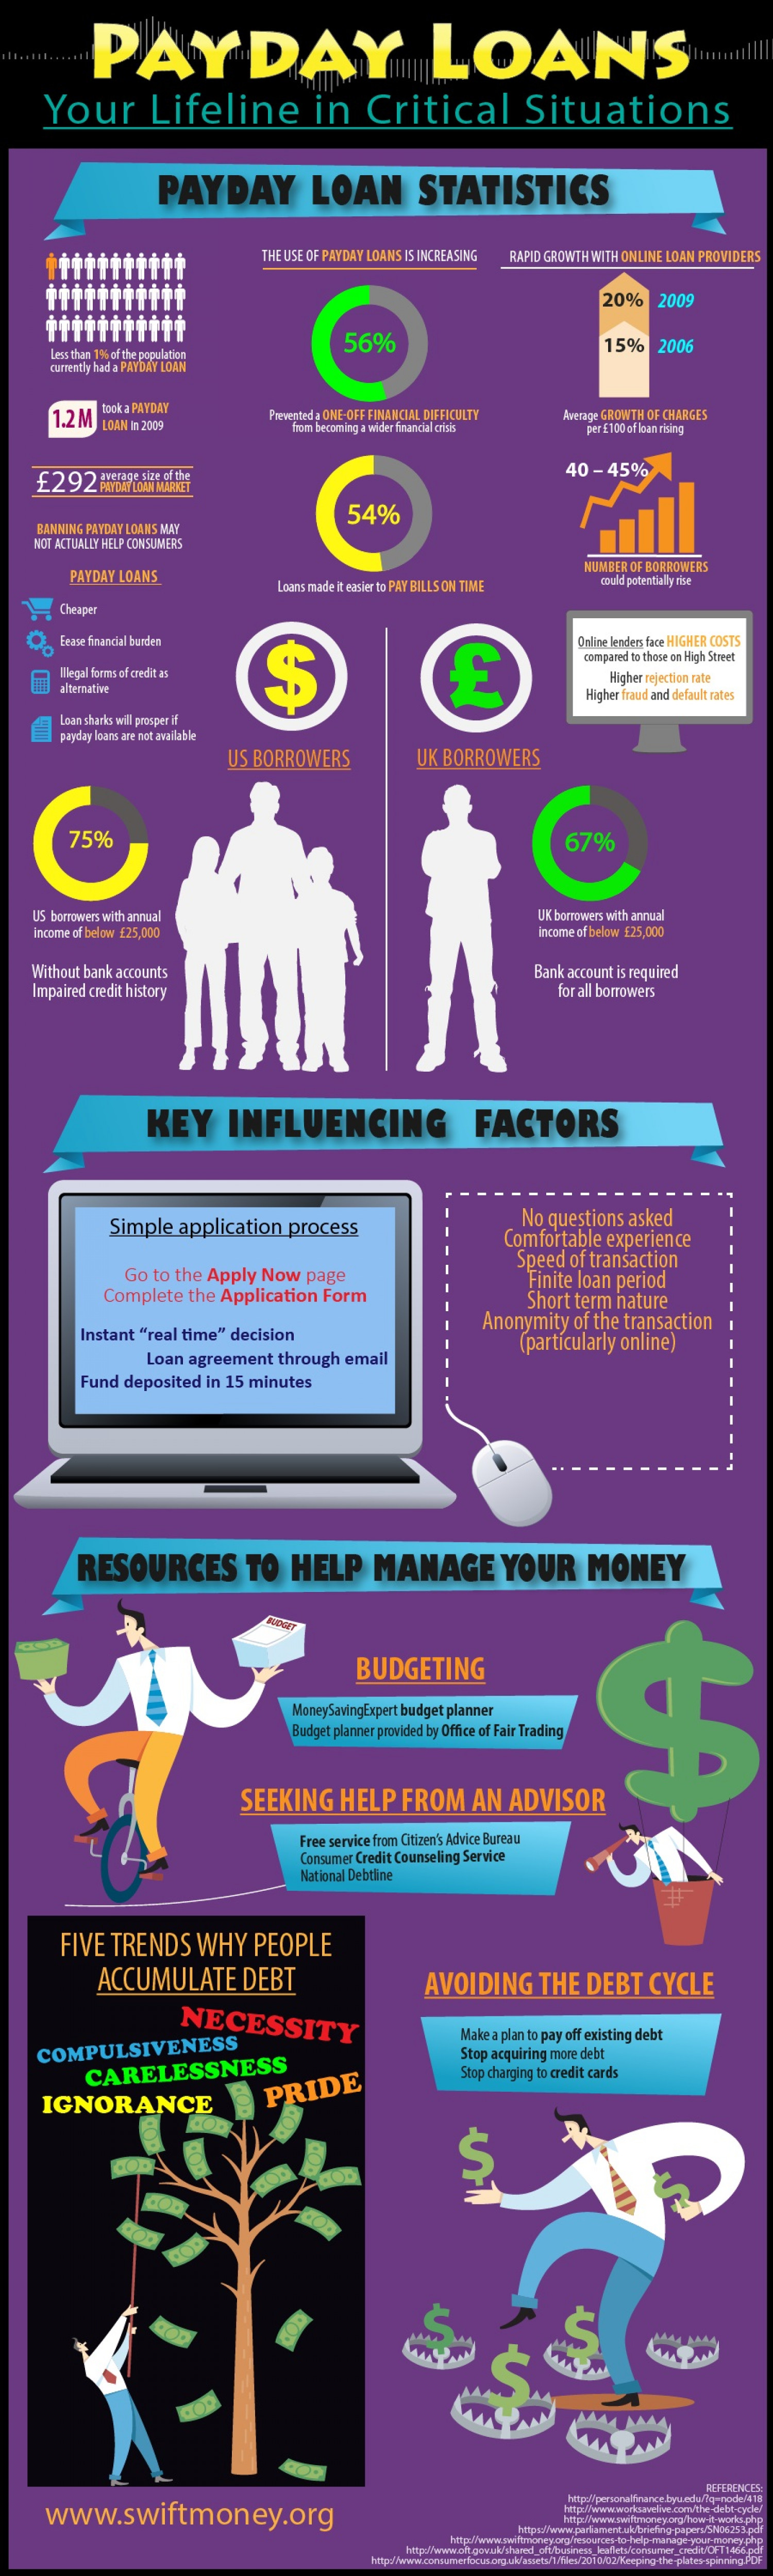 Payday Loans - Your Lifeline In Critical Financial Situations. Infographic